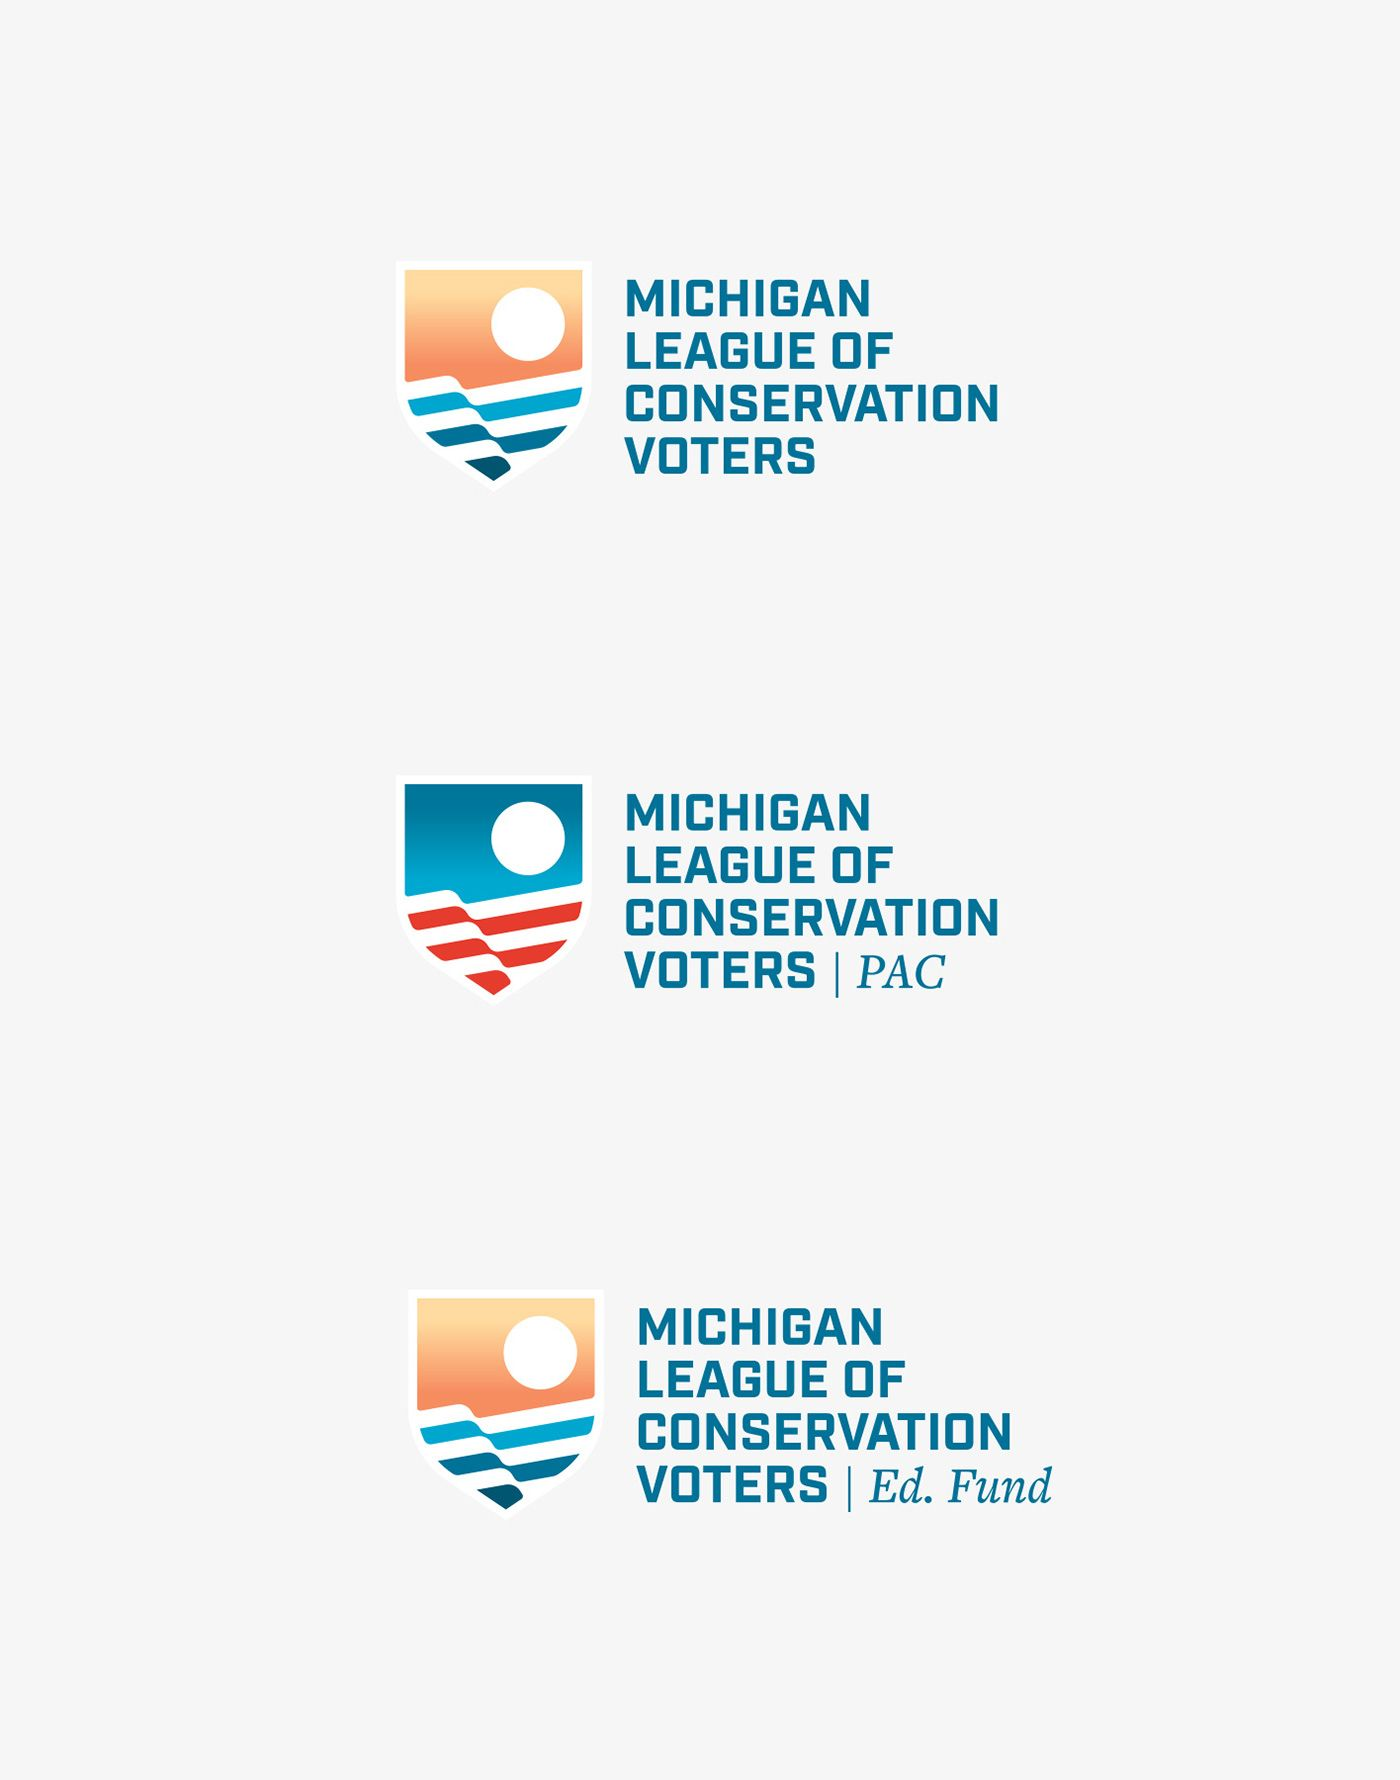 Michigan League of Conservation Voters branding